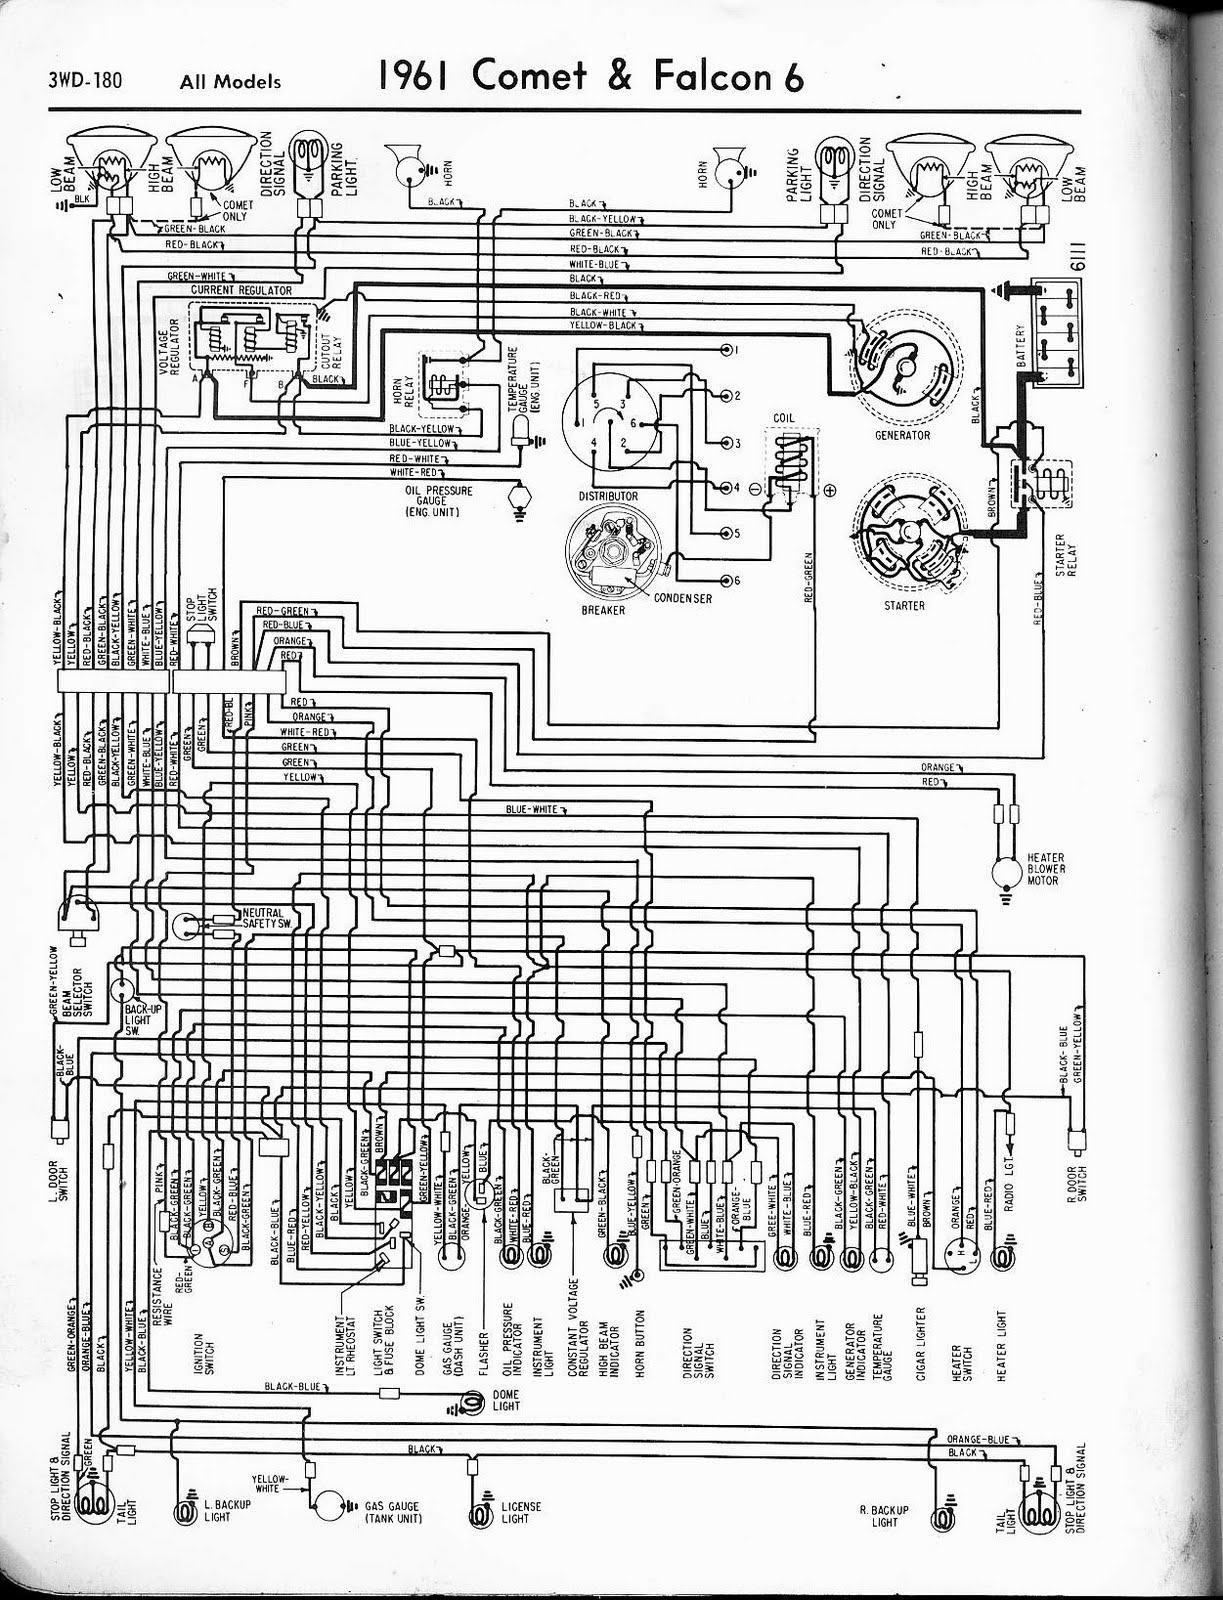 Dose your car still have a ballast resistor? Below is 1961 wiring diagram.